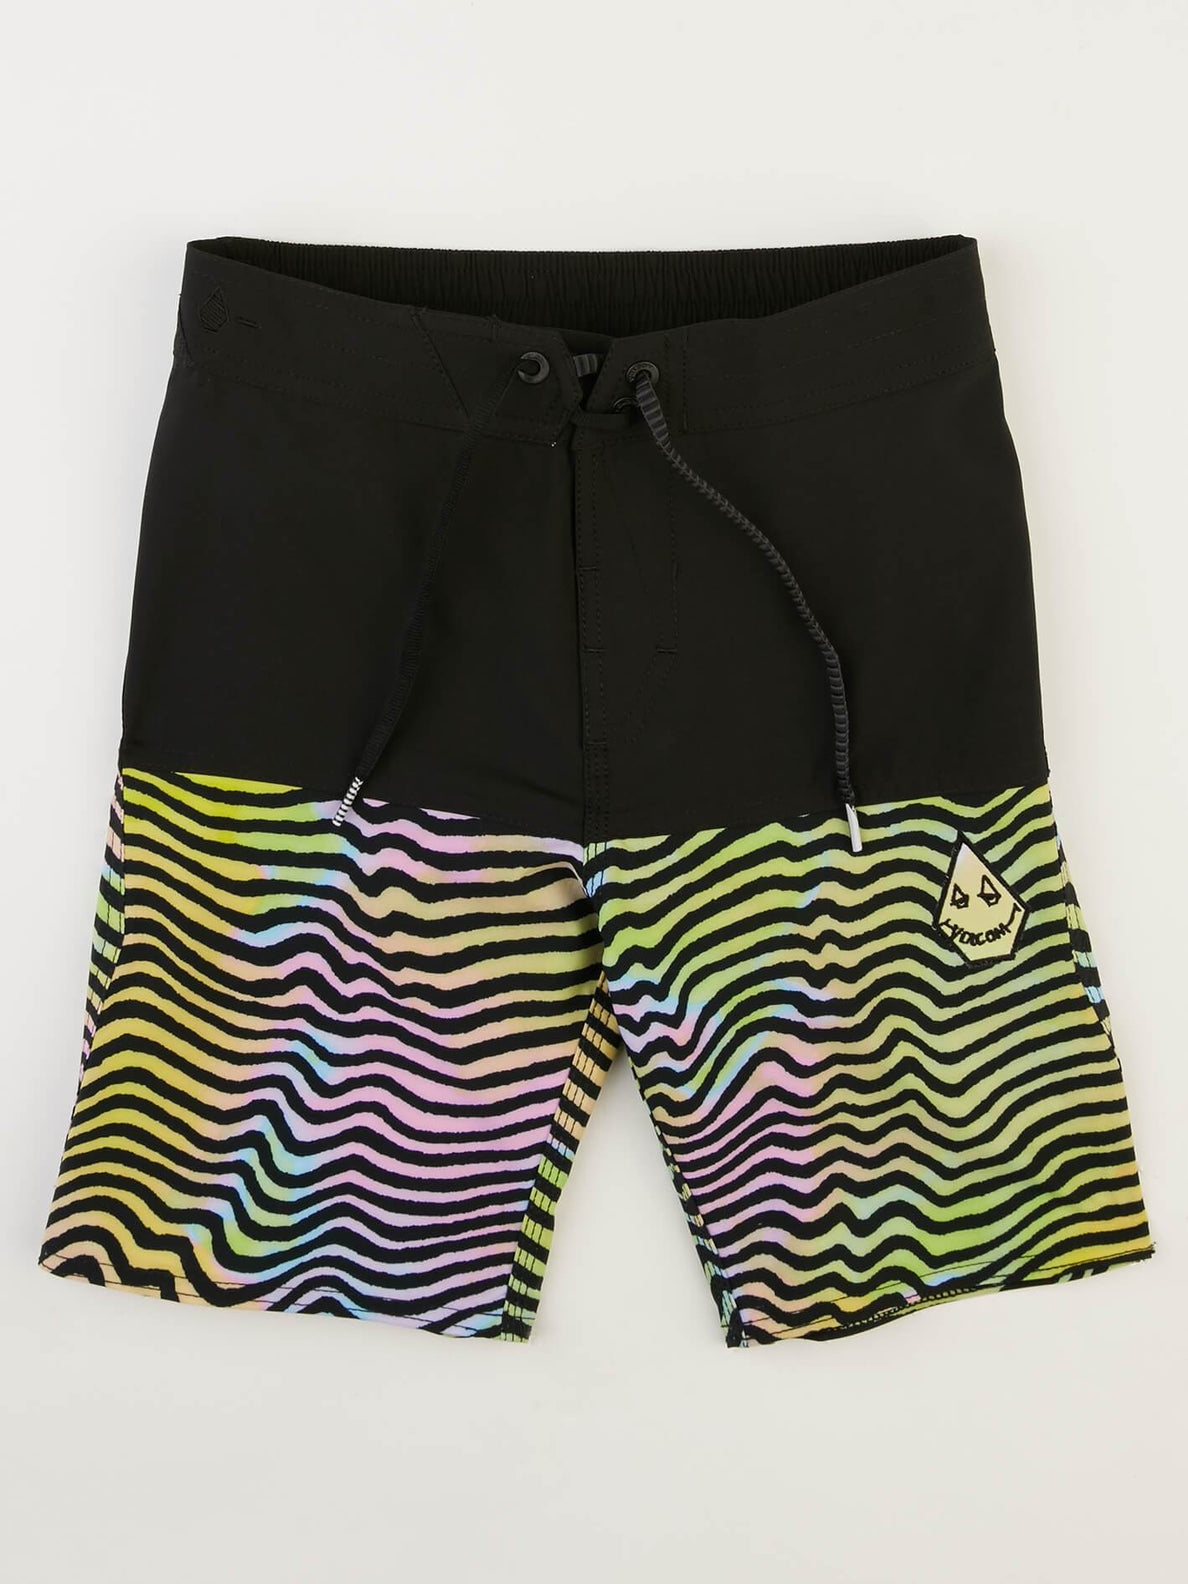 37cc05316a9 Big Boys Vibes Elastic Boardshorts In Multi, ...